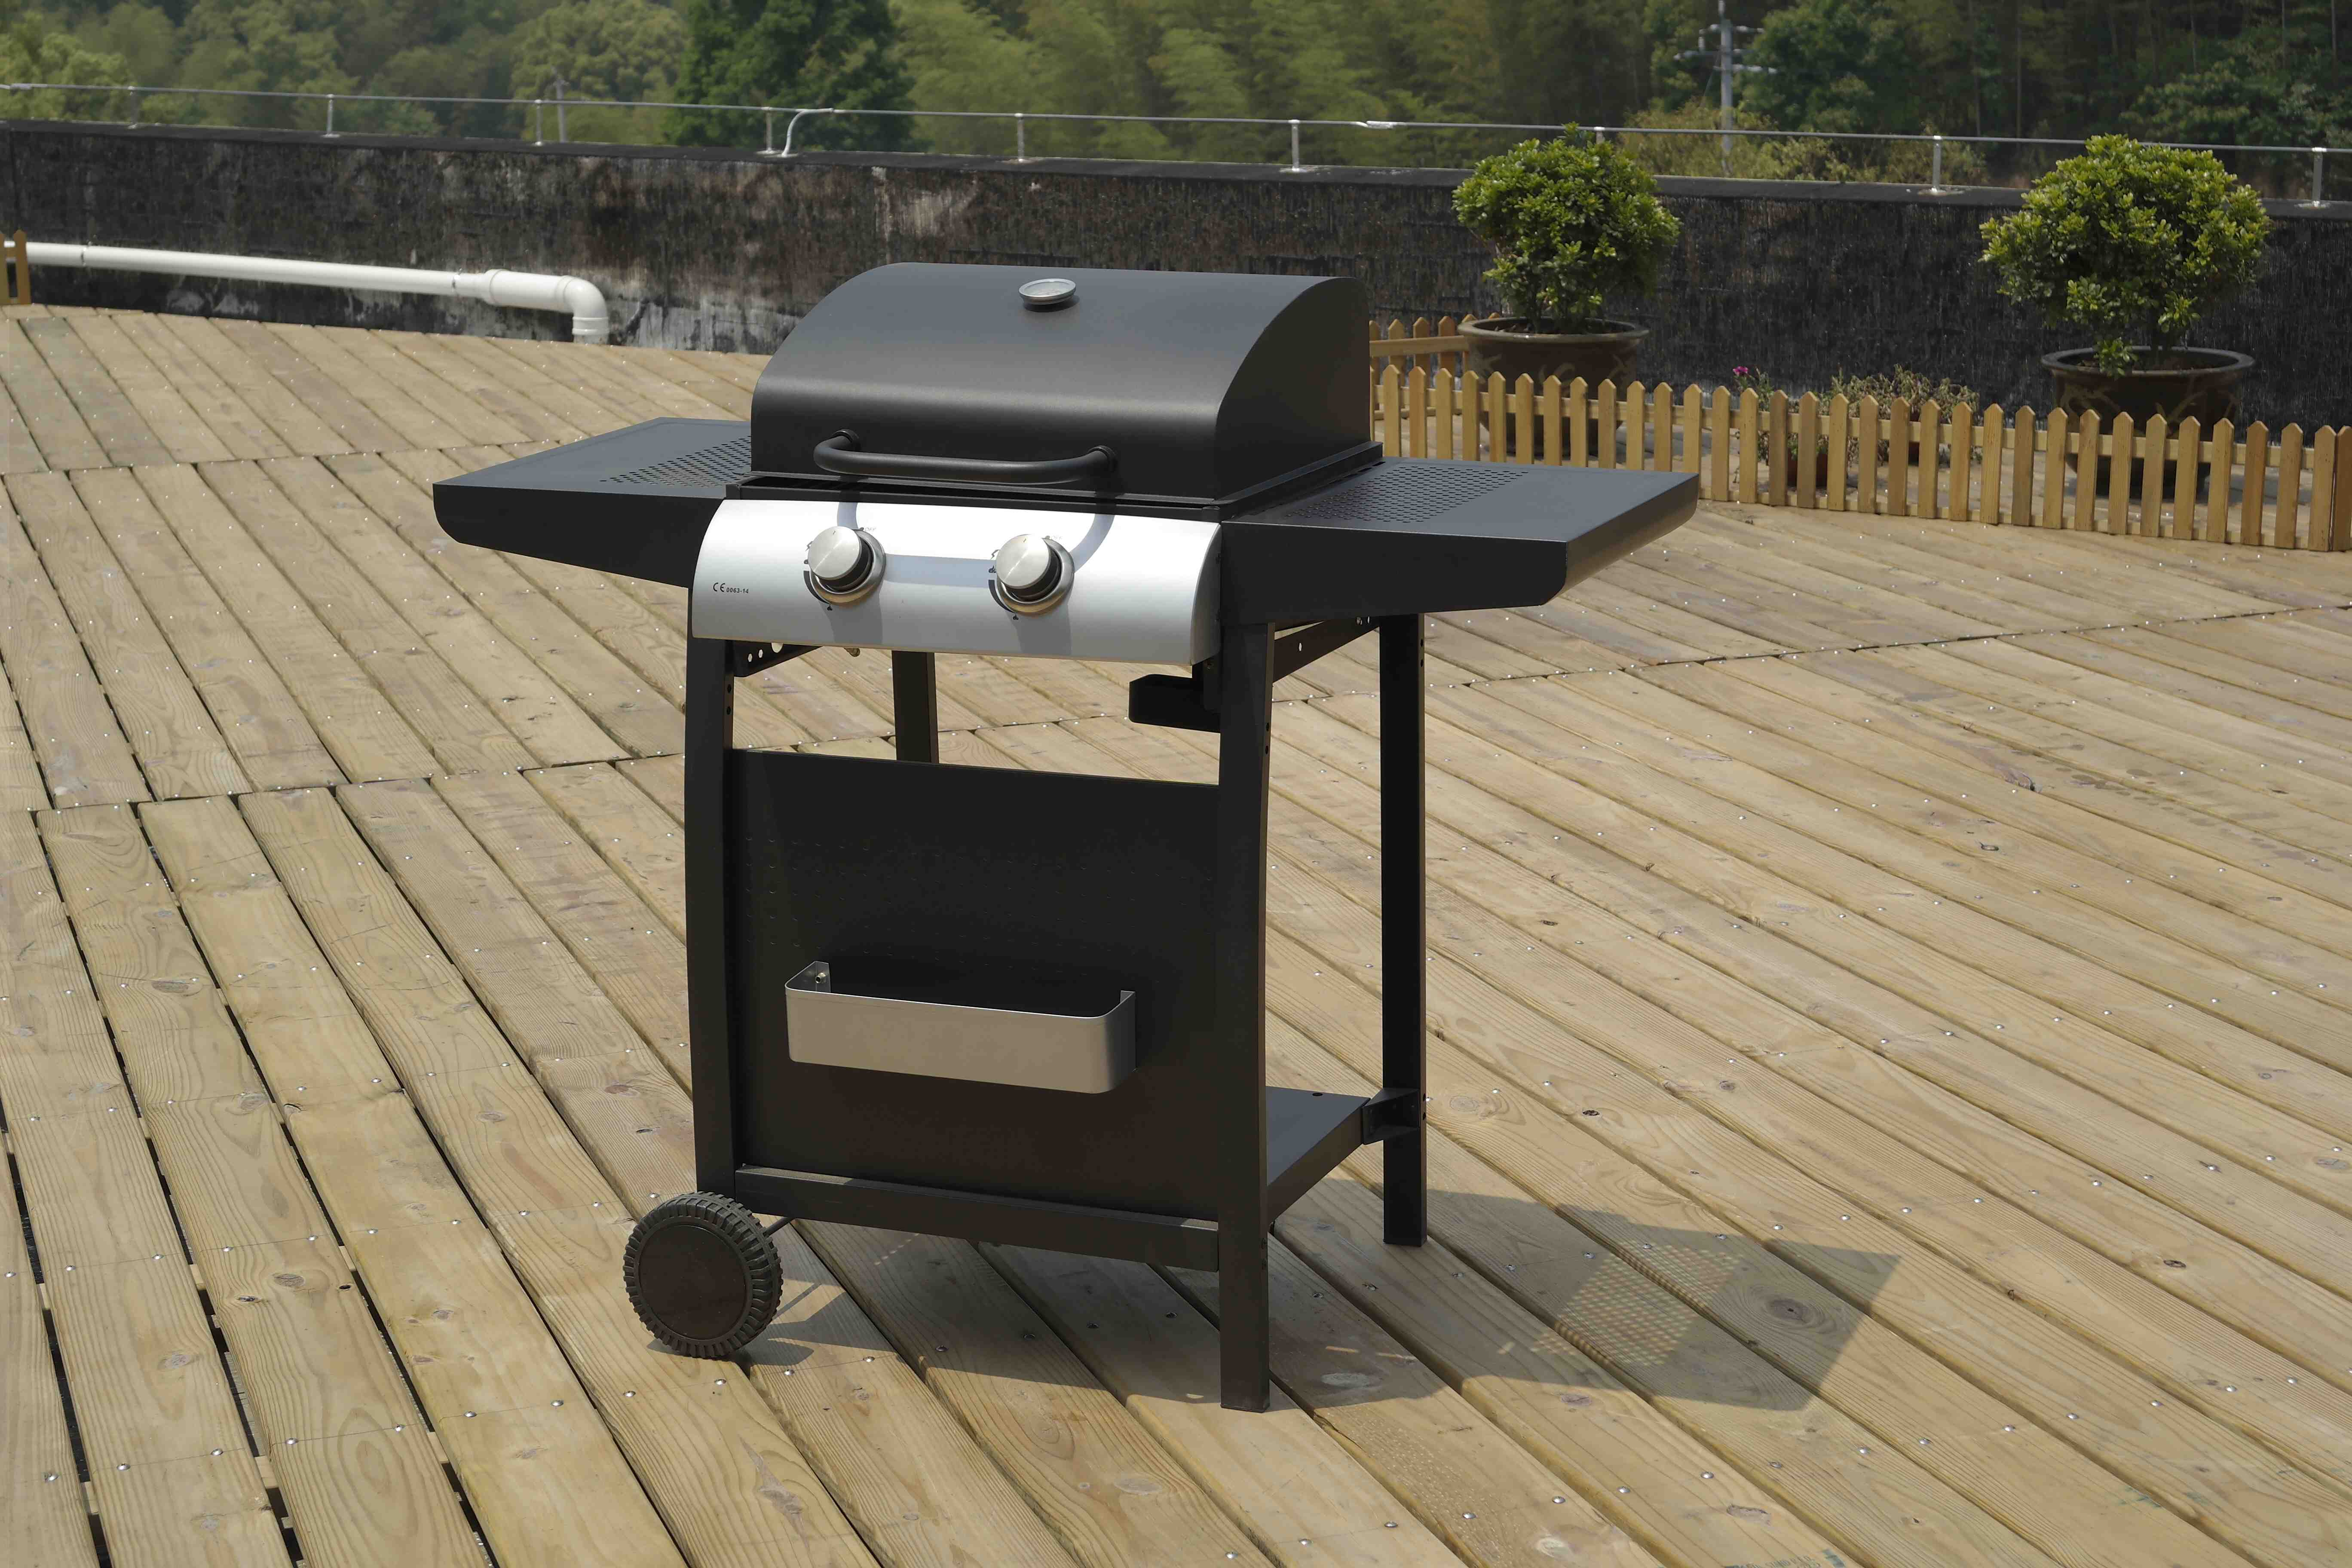 buy cheap gas barbeque compare outdoor adventure prices. Black Bedroom Furniture Sets. Home Design Ideas